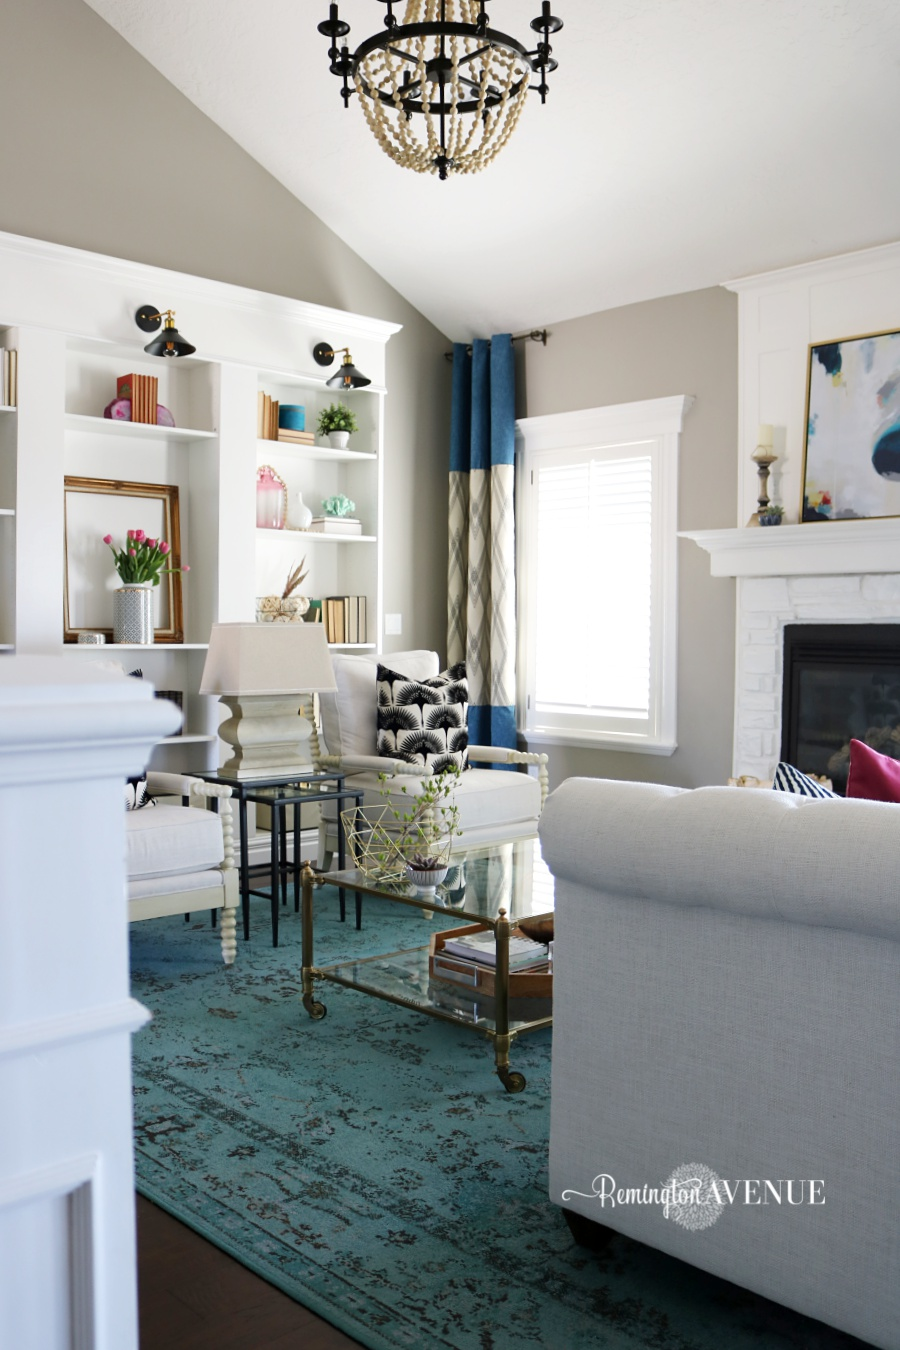 Living Room Color Pop bright white with a pop of color living room reveal - remington avenue